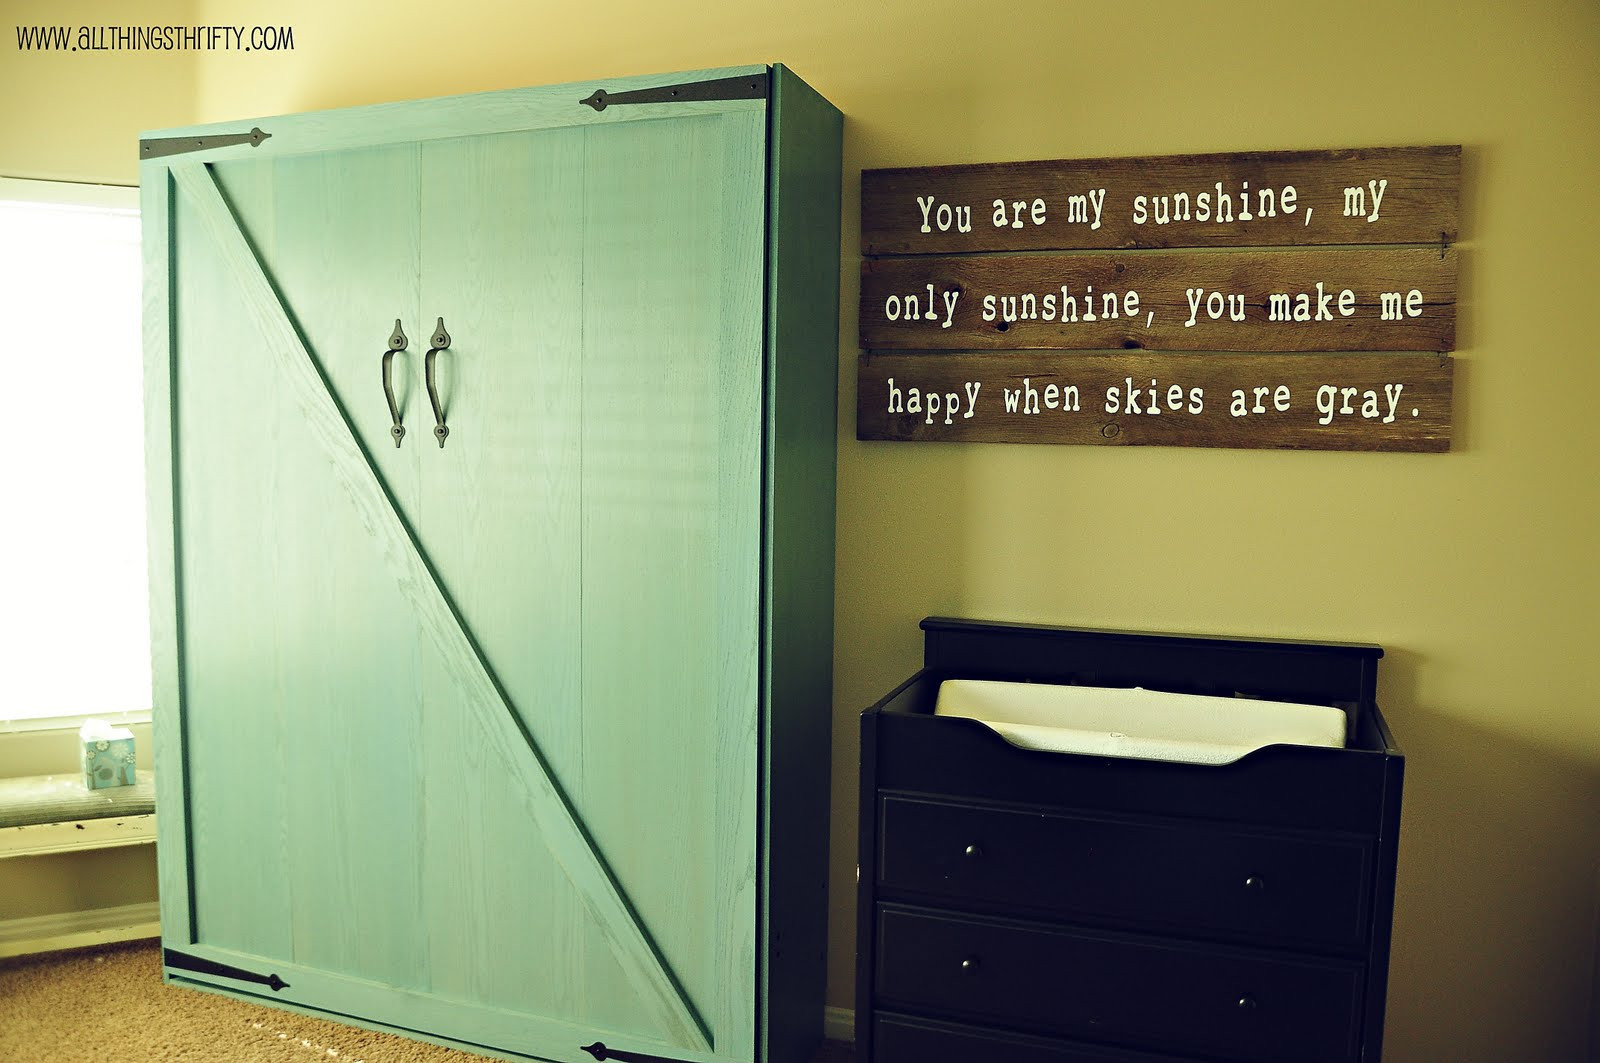 Best ideas about Murphy Bed DIY Kit . Save or Pin A Wilding Wall Bed DIY Kit Now.